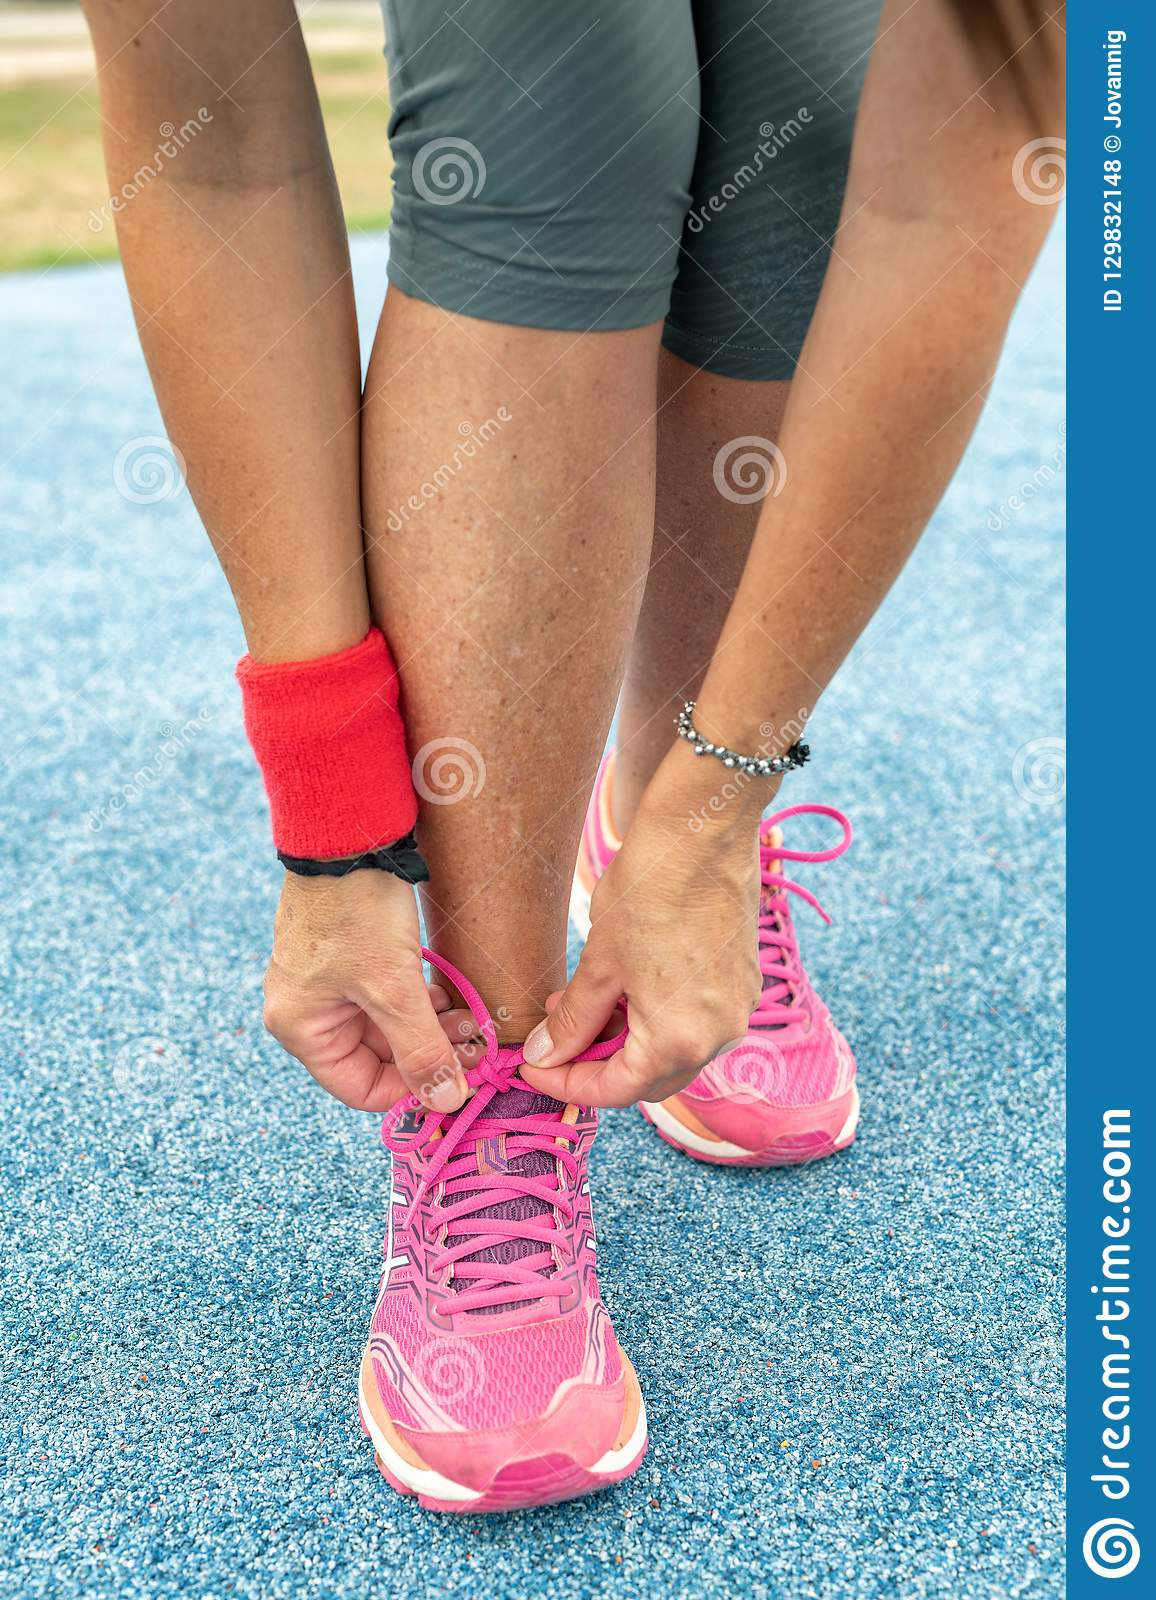 Running shoes - woman tying shoe laces in city park run track